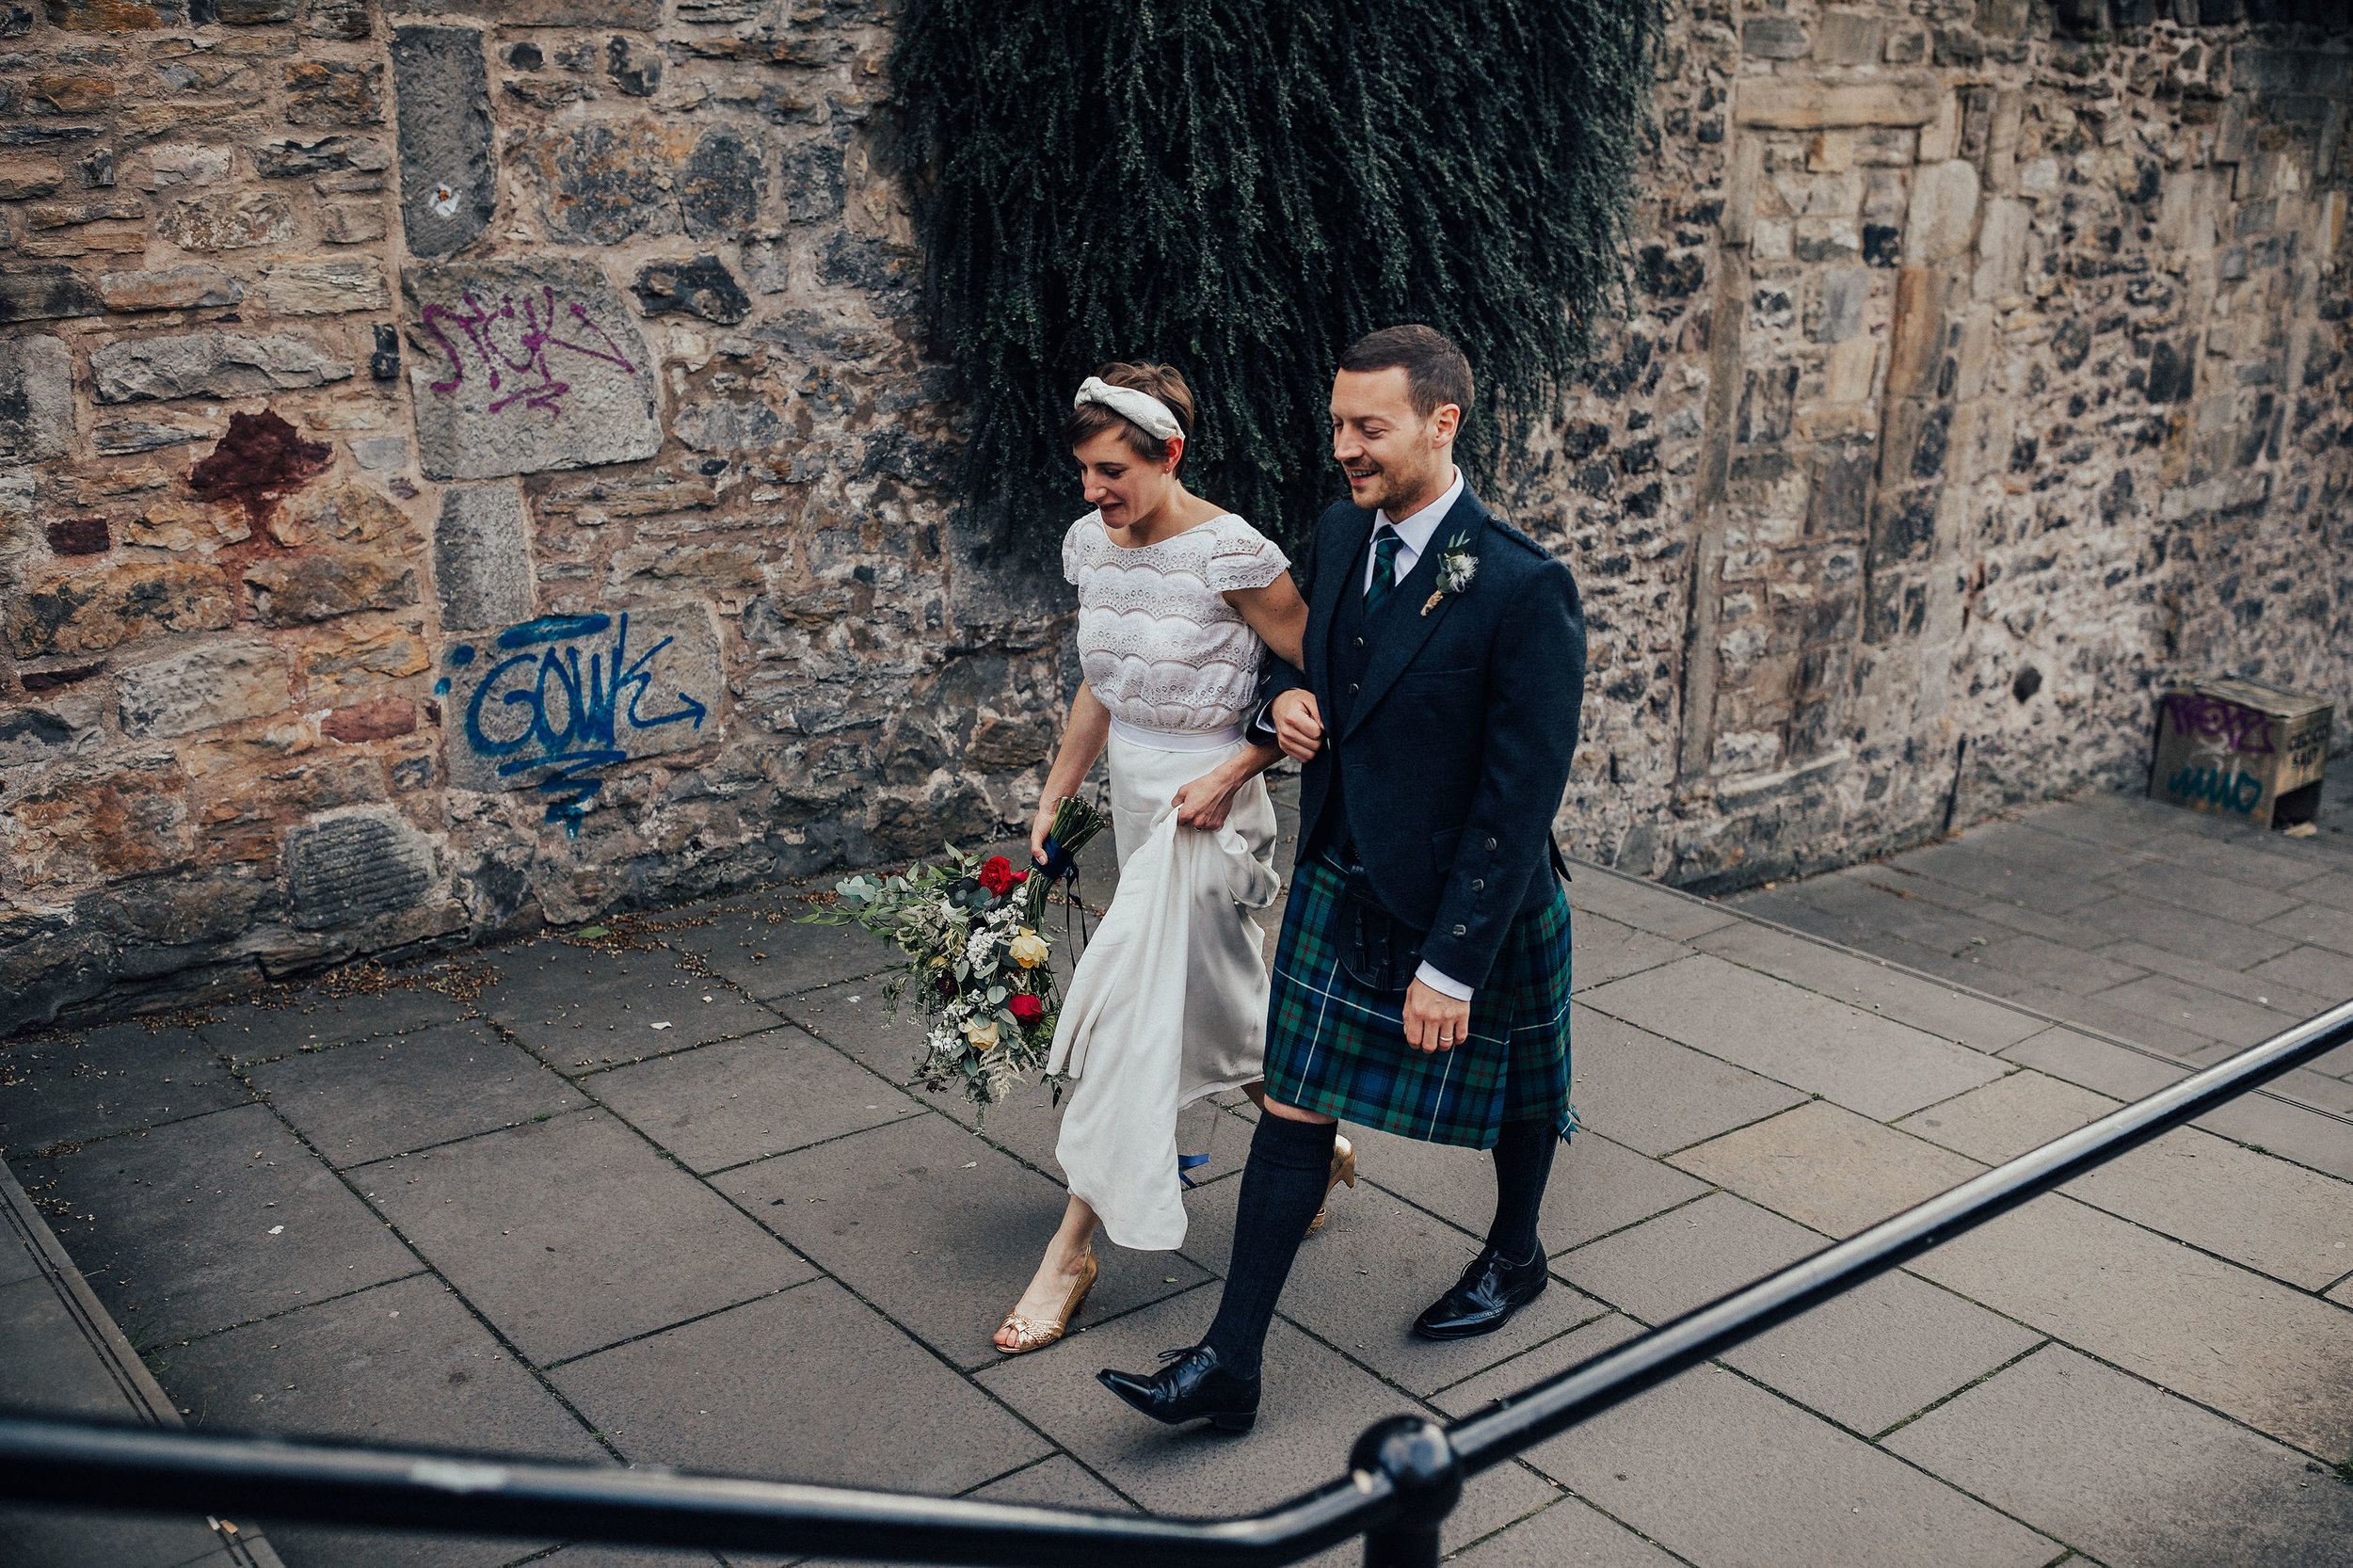 TIMBERYARD_EDINBURGH_WEDDING_PJ_PHILLIPS_PHOTOGRAPHY_179.jpg